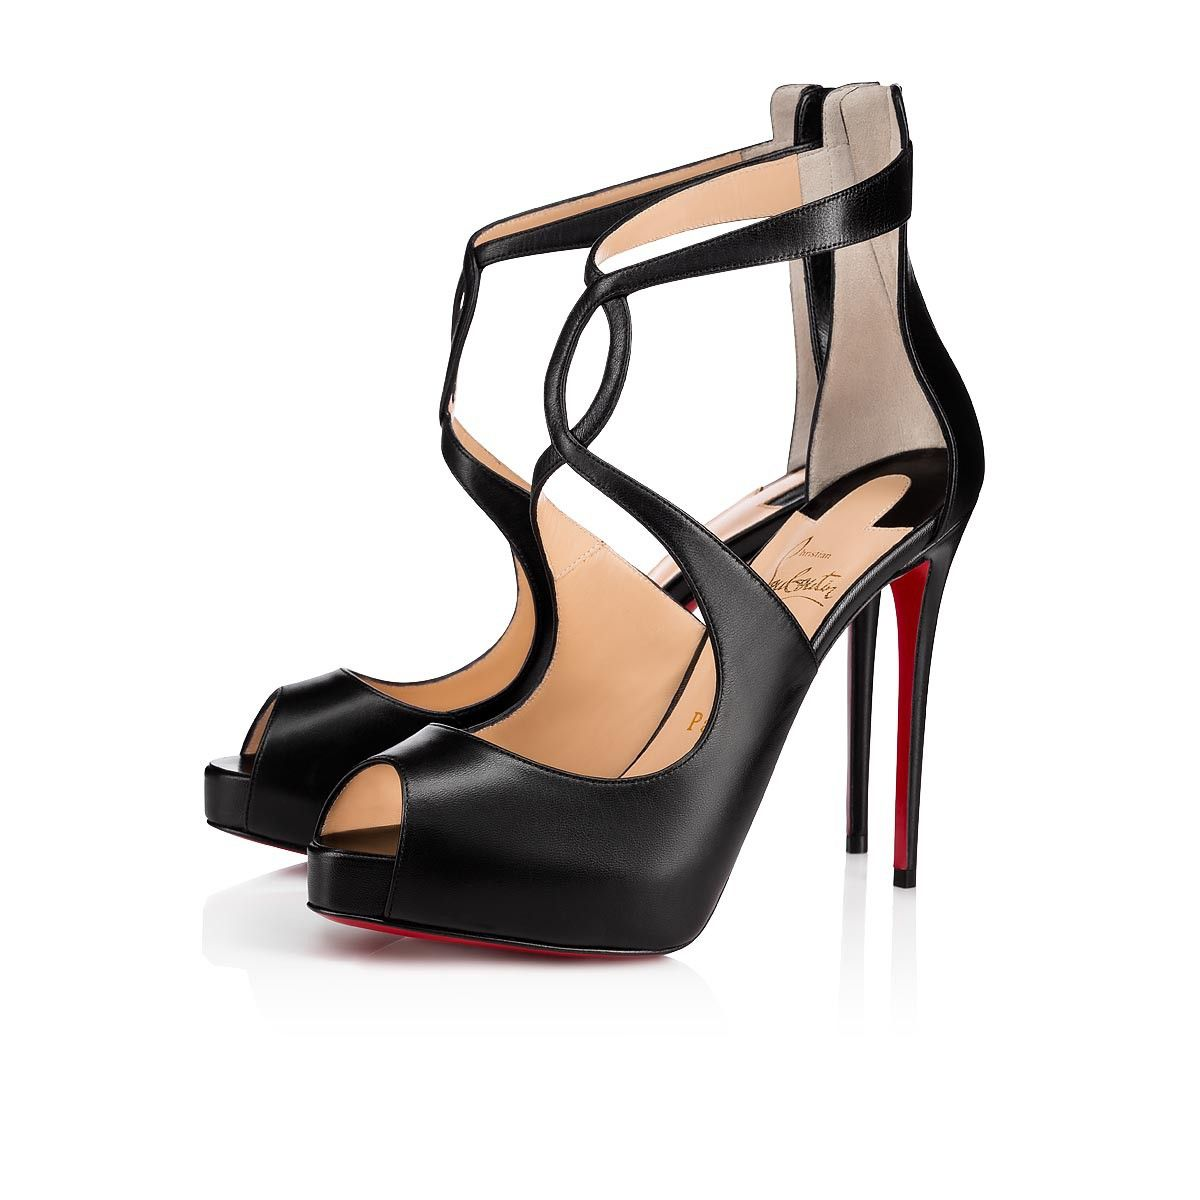 34b190f4244 Christian Louboutin United States Official Online Boutique - Rosie ...